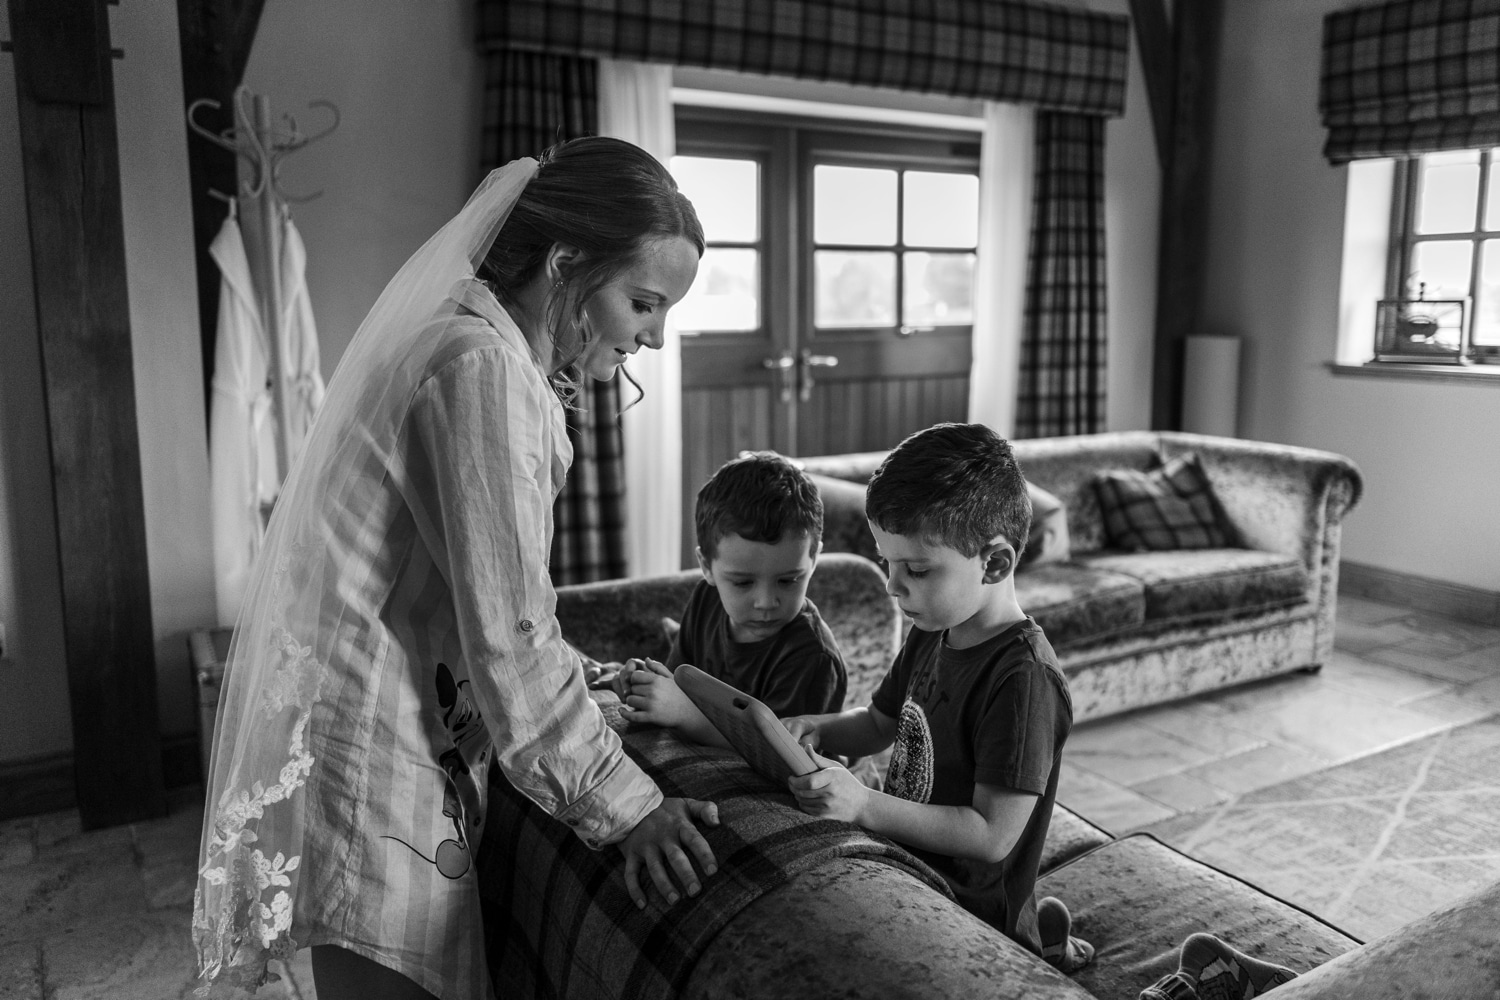 Bride with veil and pyjamas with boys playing on ipad